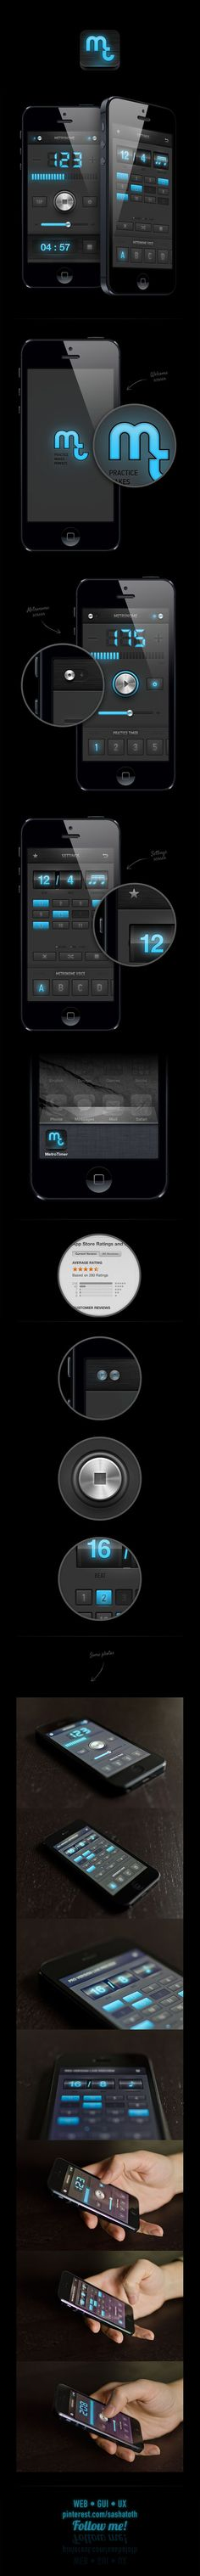 Metronome app redesign / iPad, iPhone *** Metrotimer app is an iOS metronome app suitable for musicians and students. It's the most accurate app in the apple store. We've chosen the digital interface approach, to express the accuracy of the tool. *** by Dimiter Petrov, via Behance